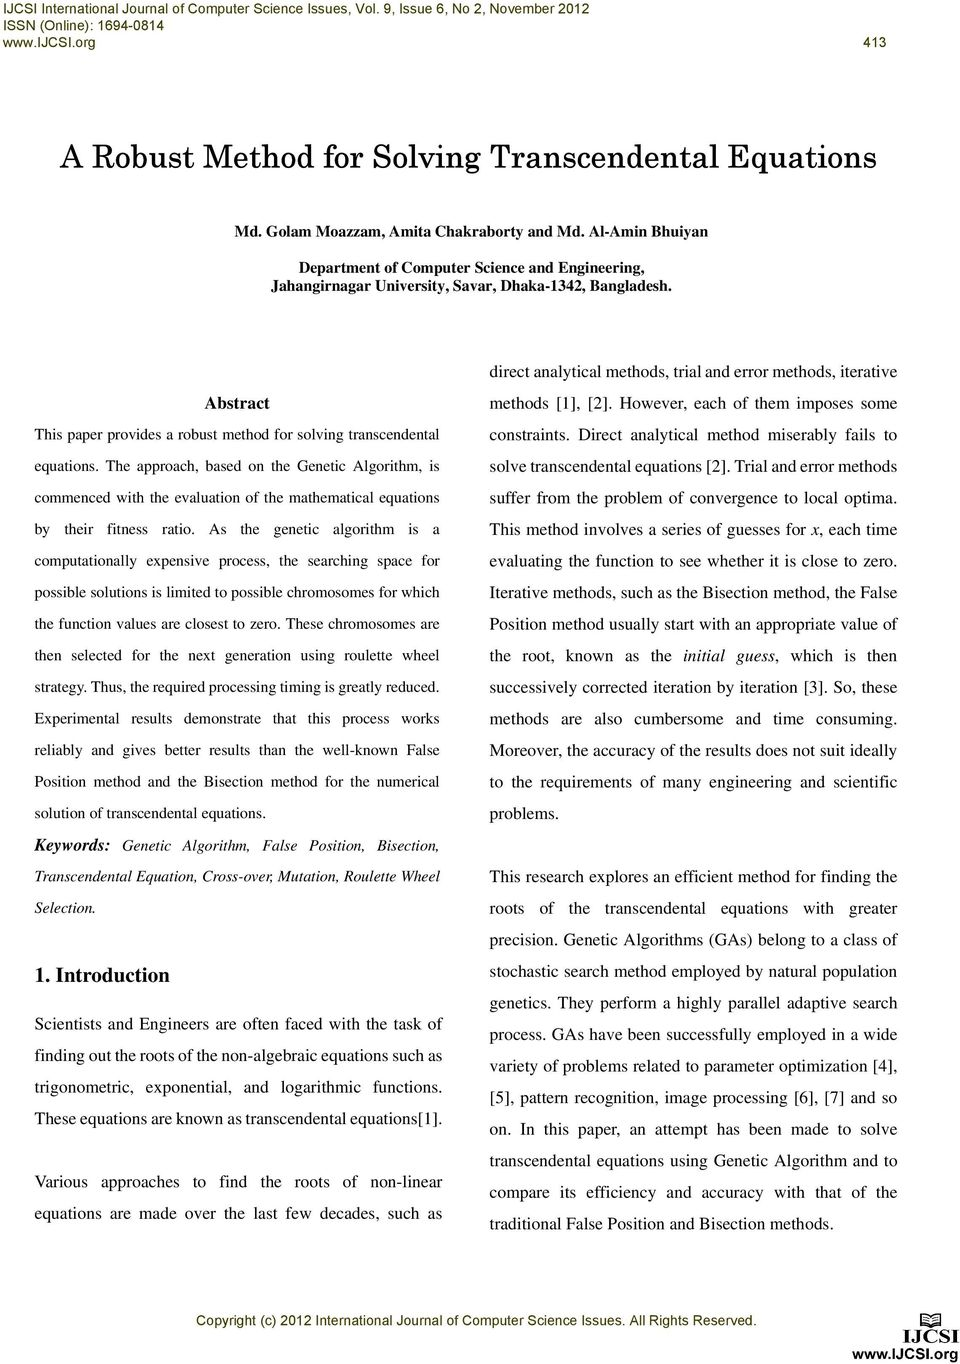 Abstract This paper provides a robust method for solving transcendental equations.